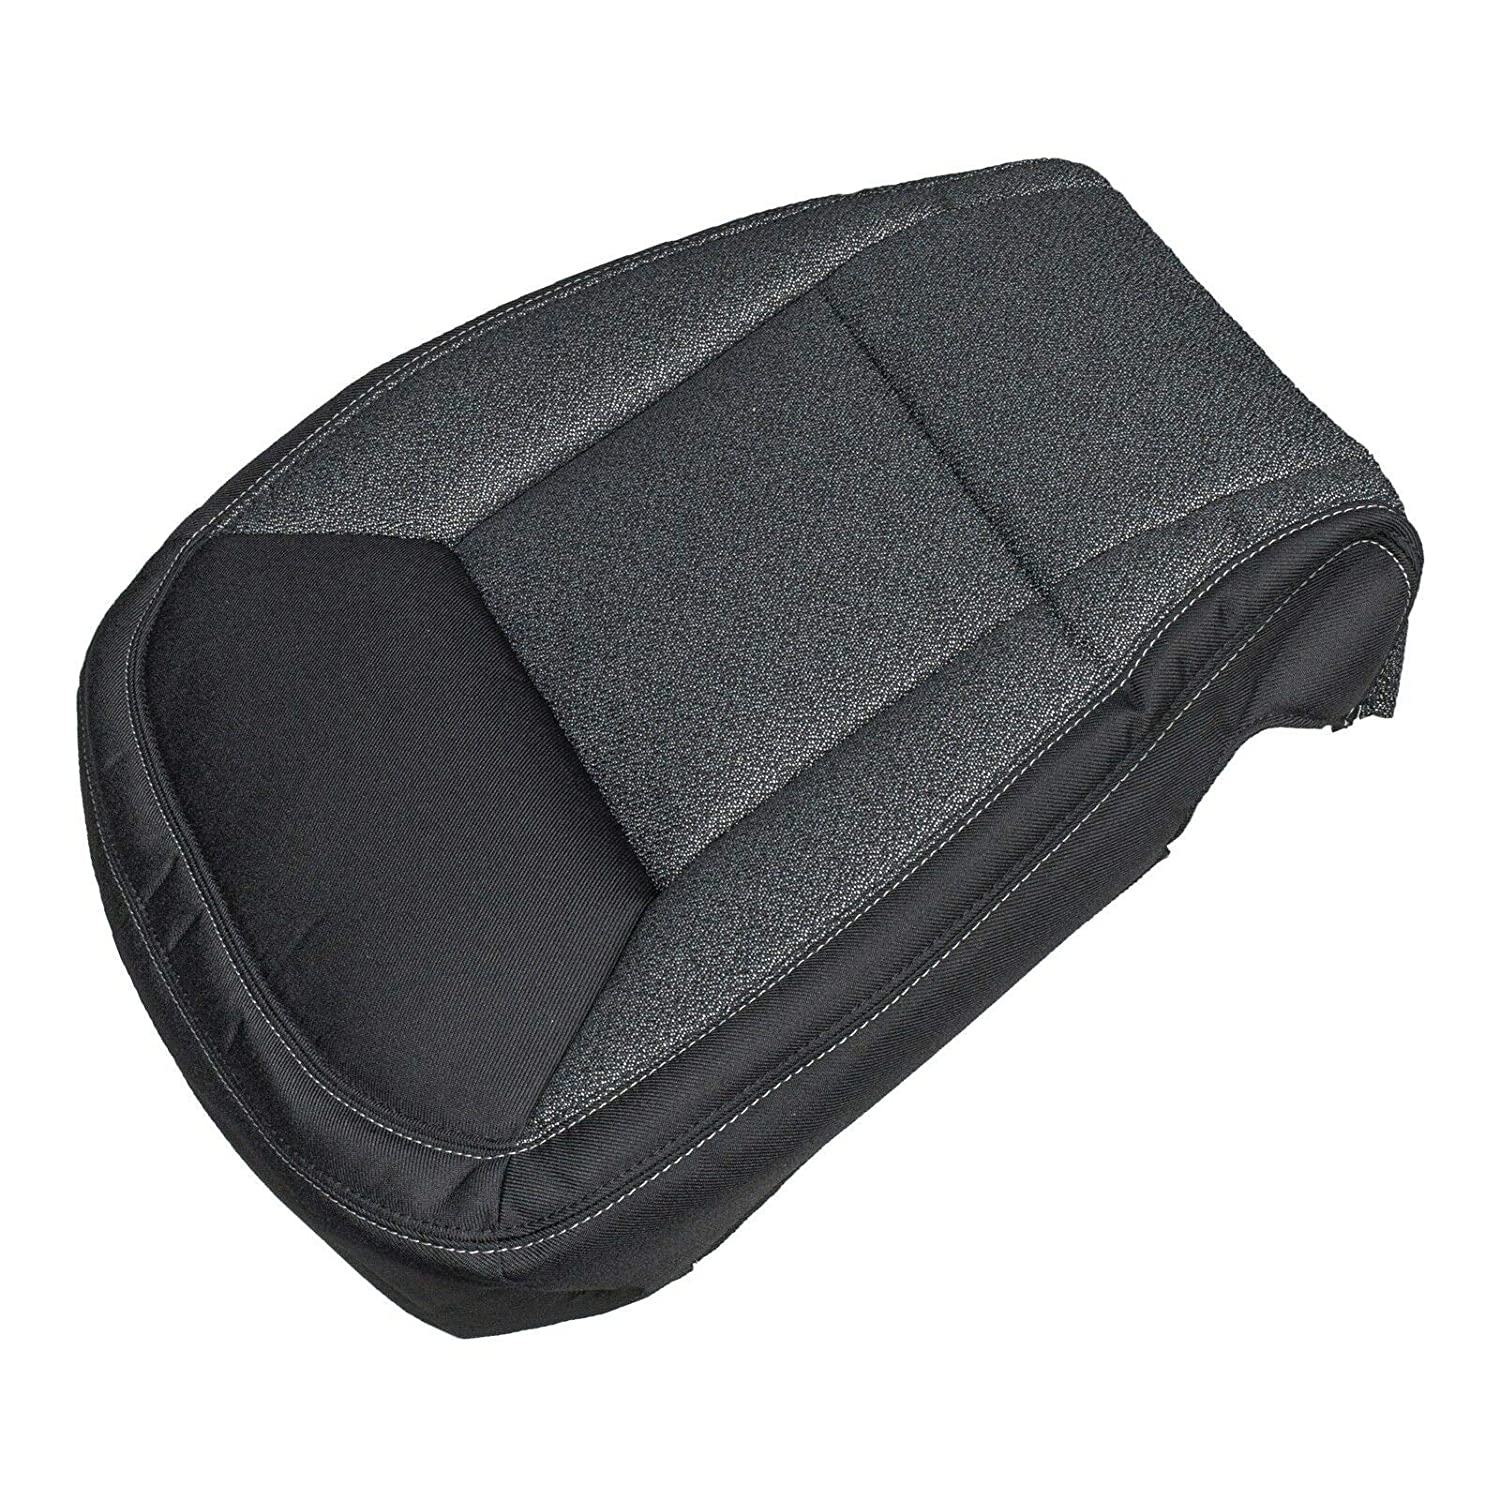 РRОМАSТЕR 1500 2500 3500 L//H OR R//H Bottom Sеаt Cushion Cover ОЕ МРR Fit for 14-20 R.А.М